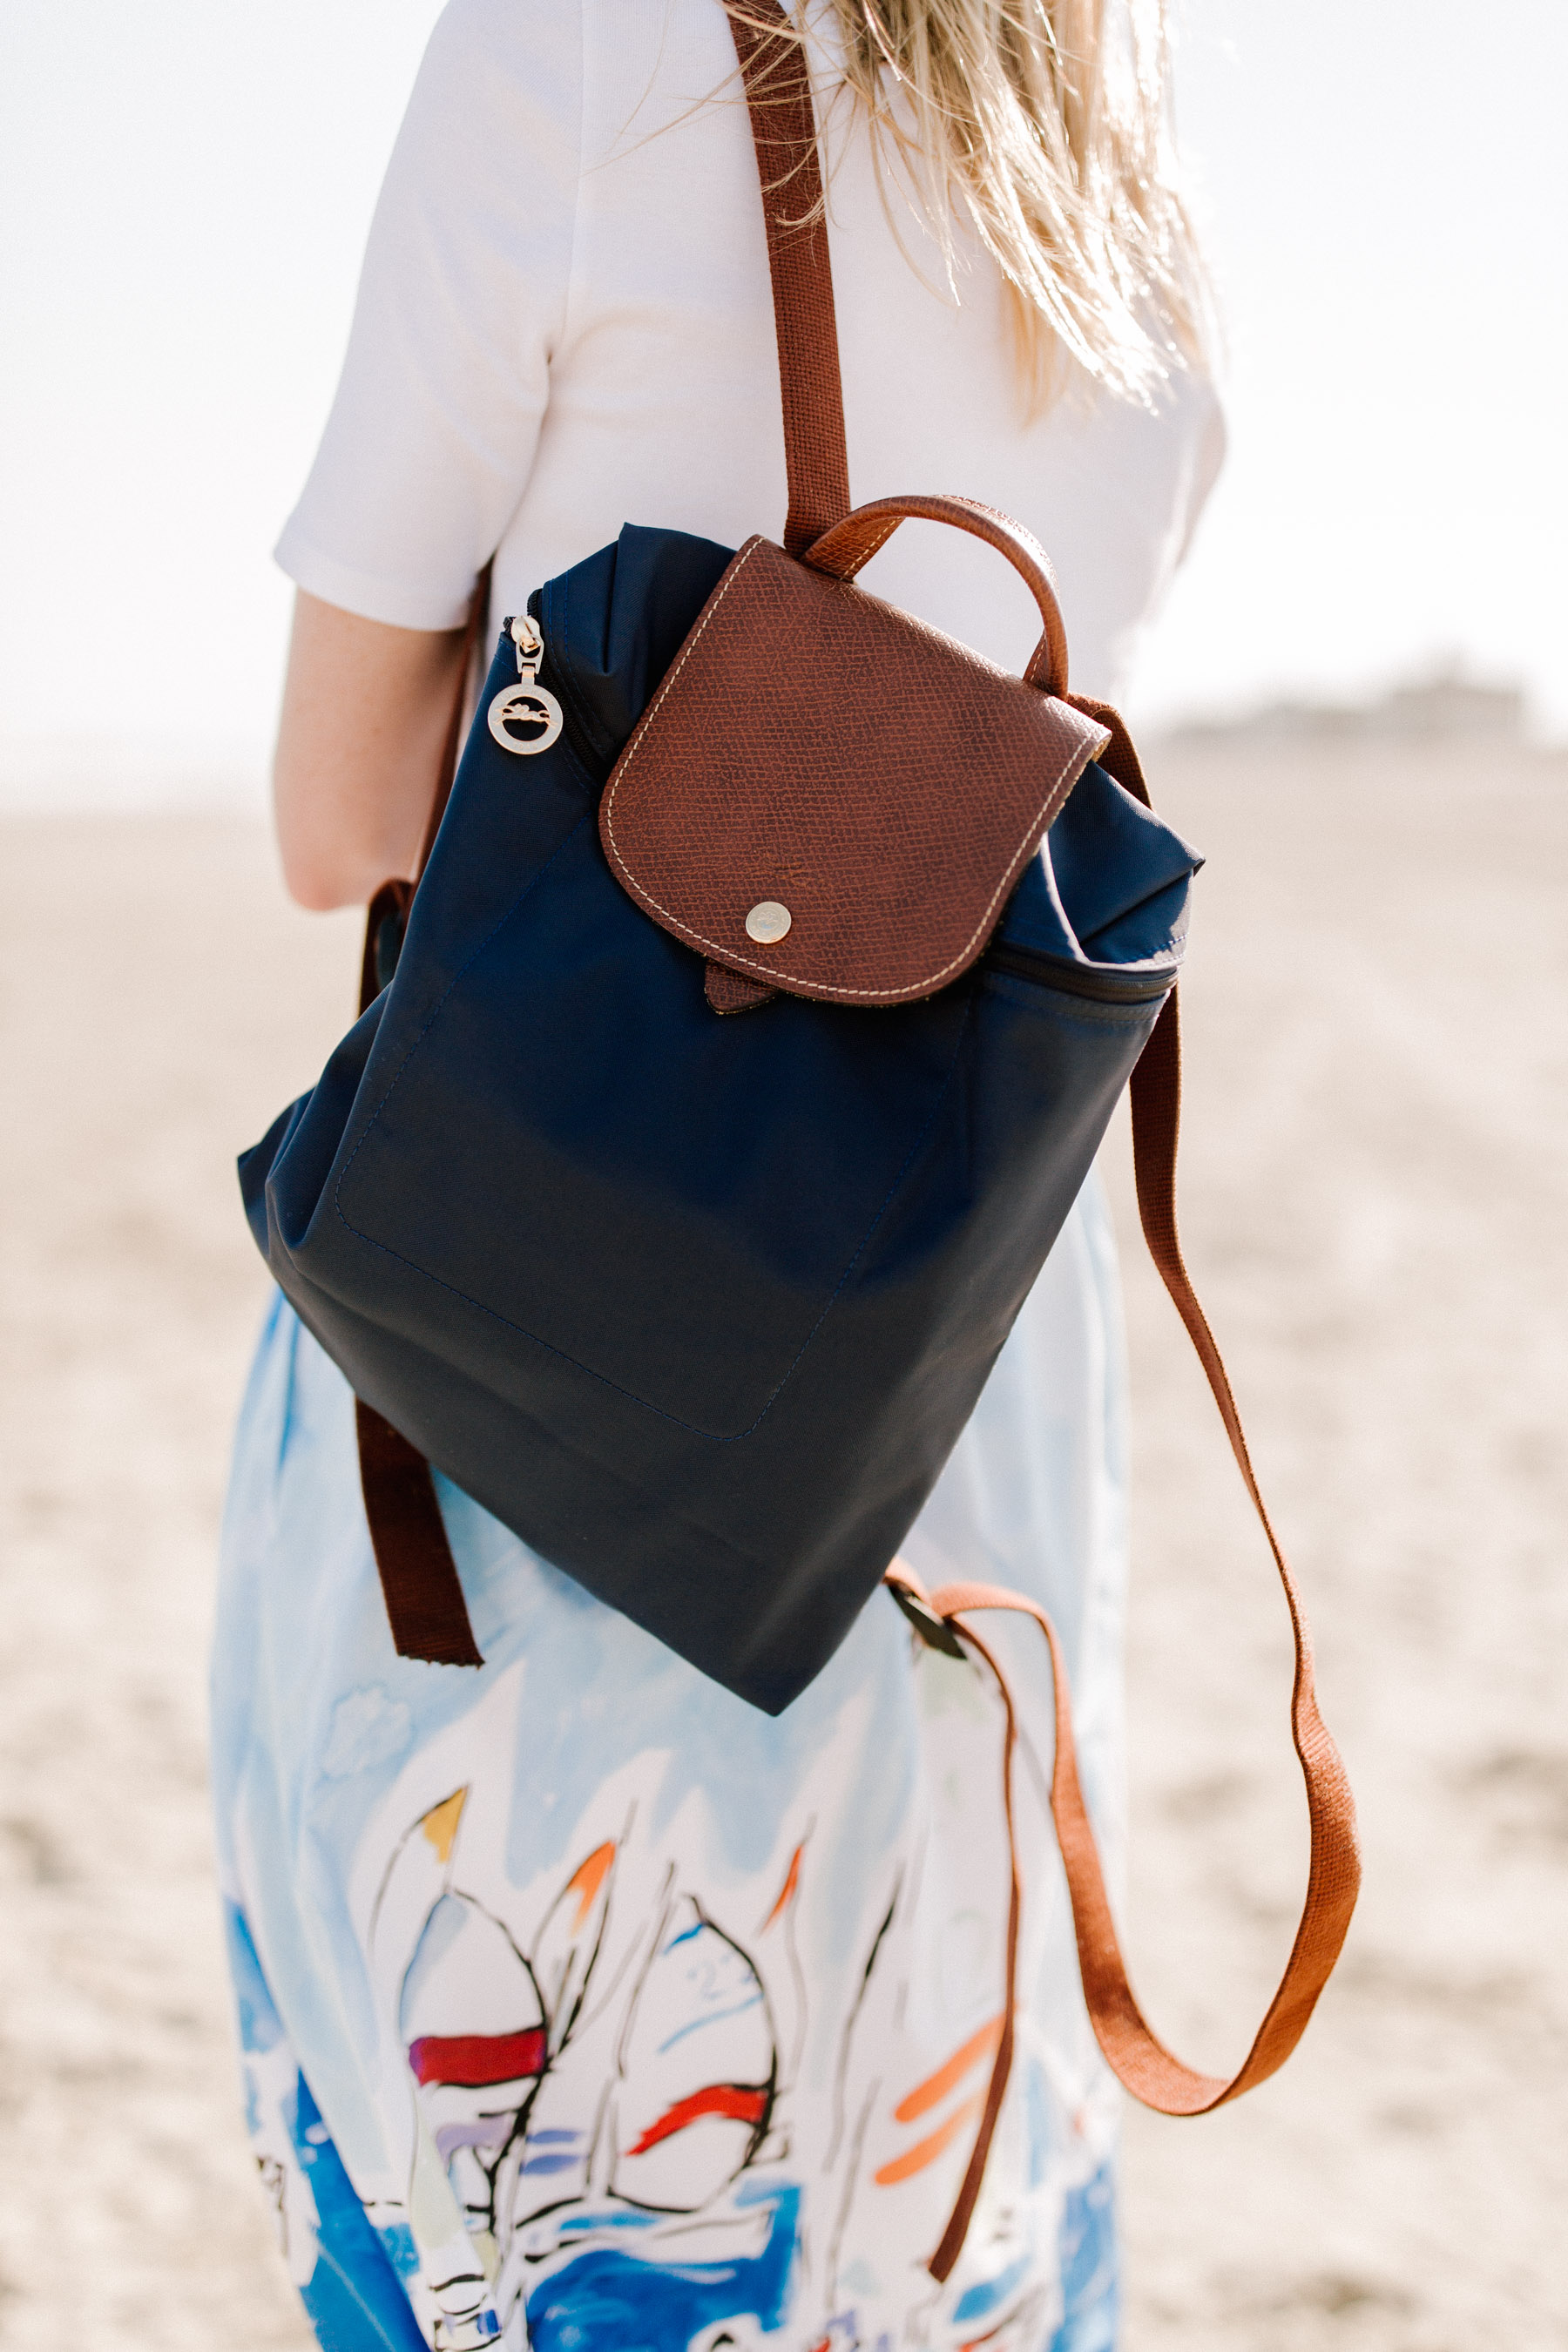 Longchamp Backpack on Preppy Style blogger Kelly in the City